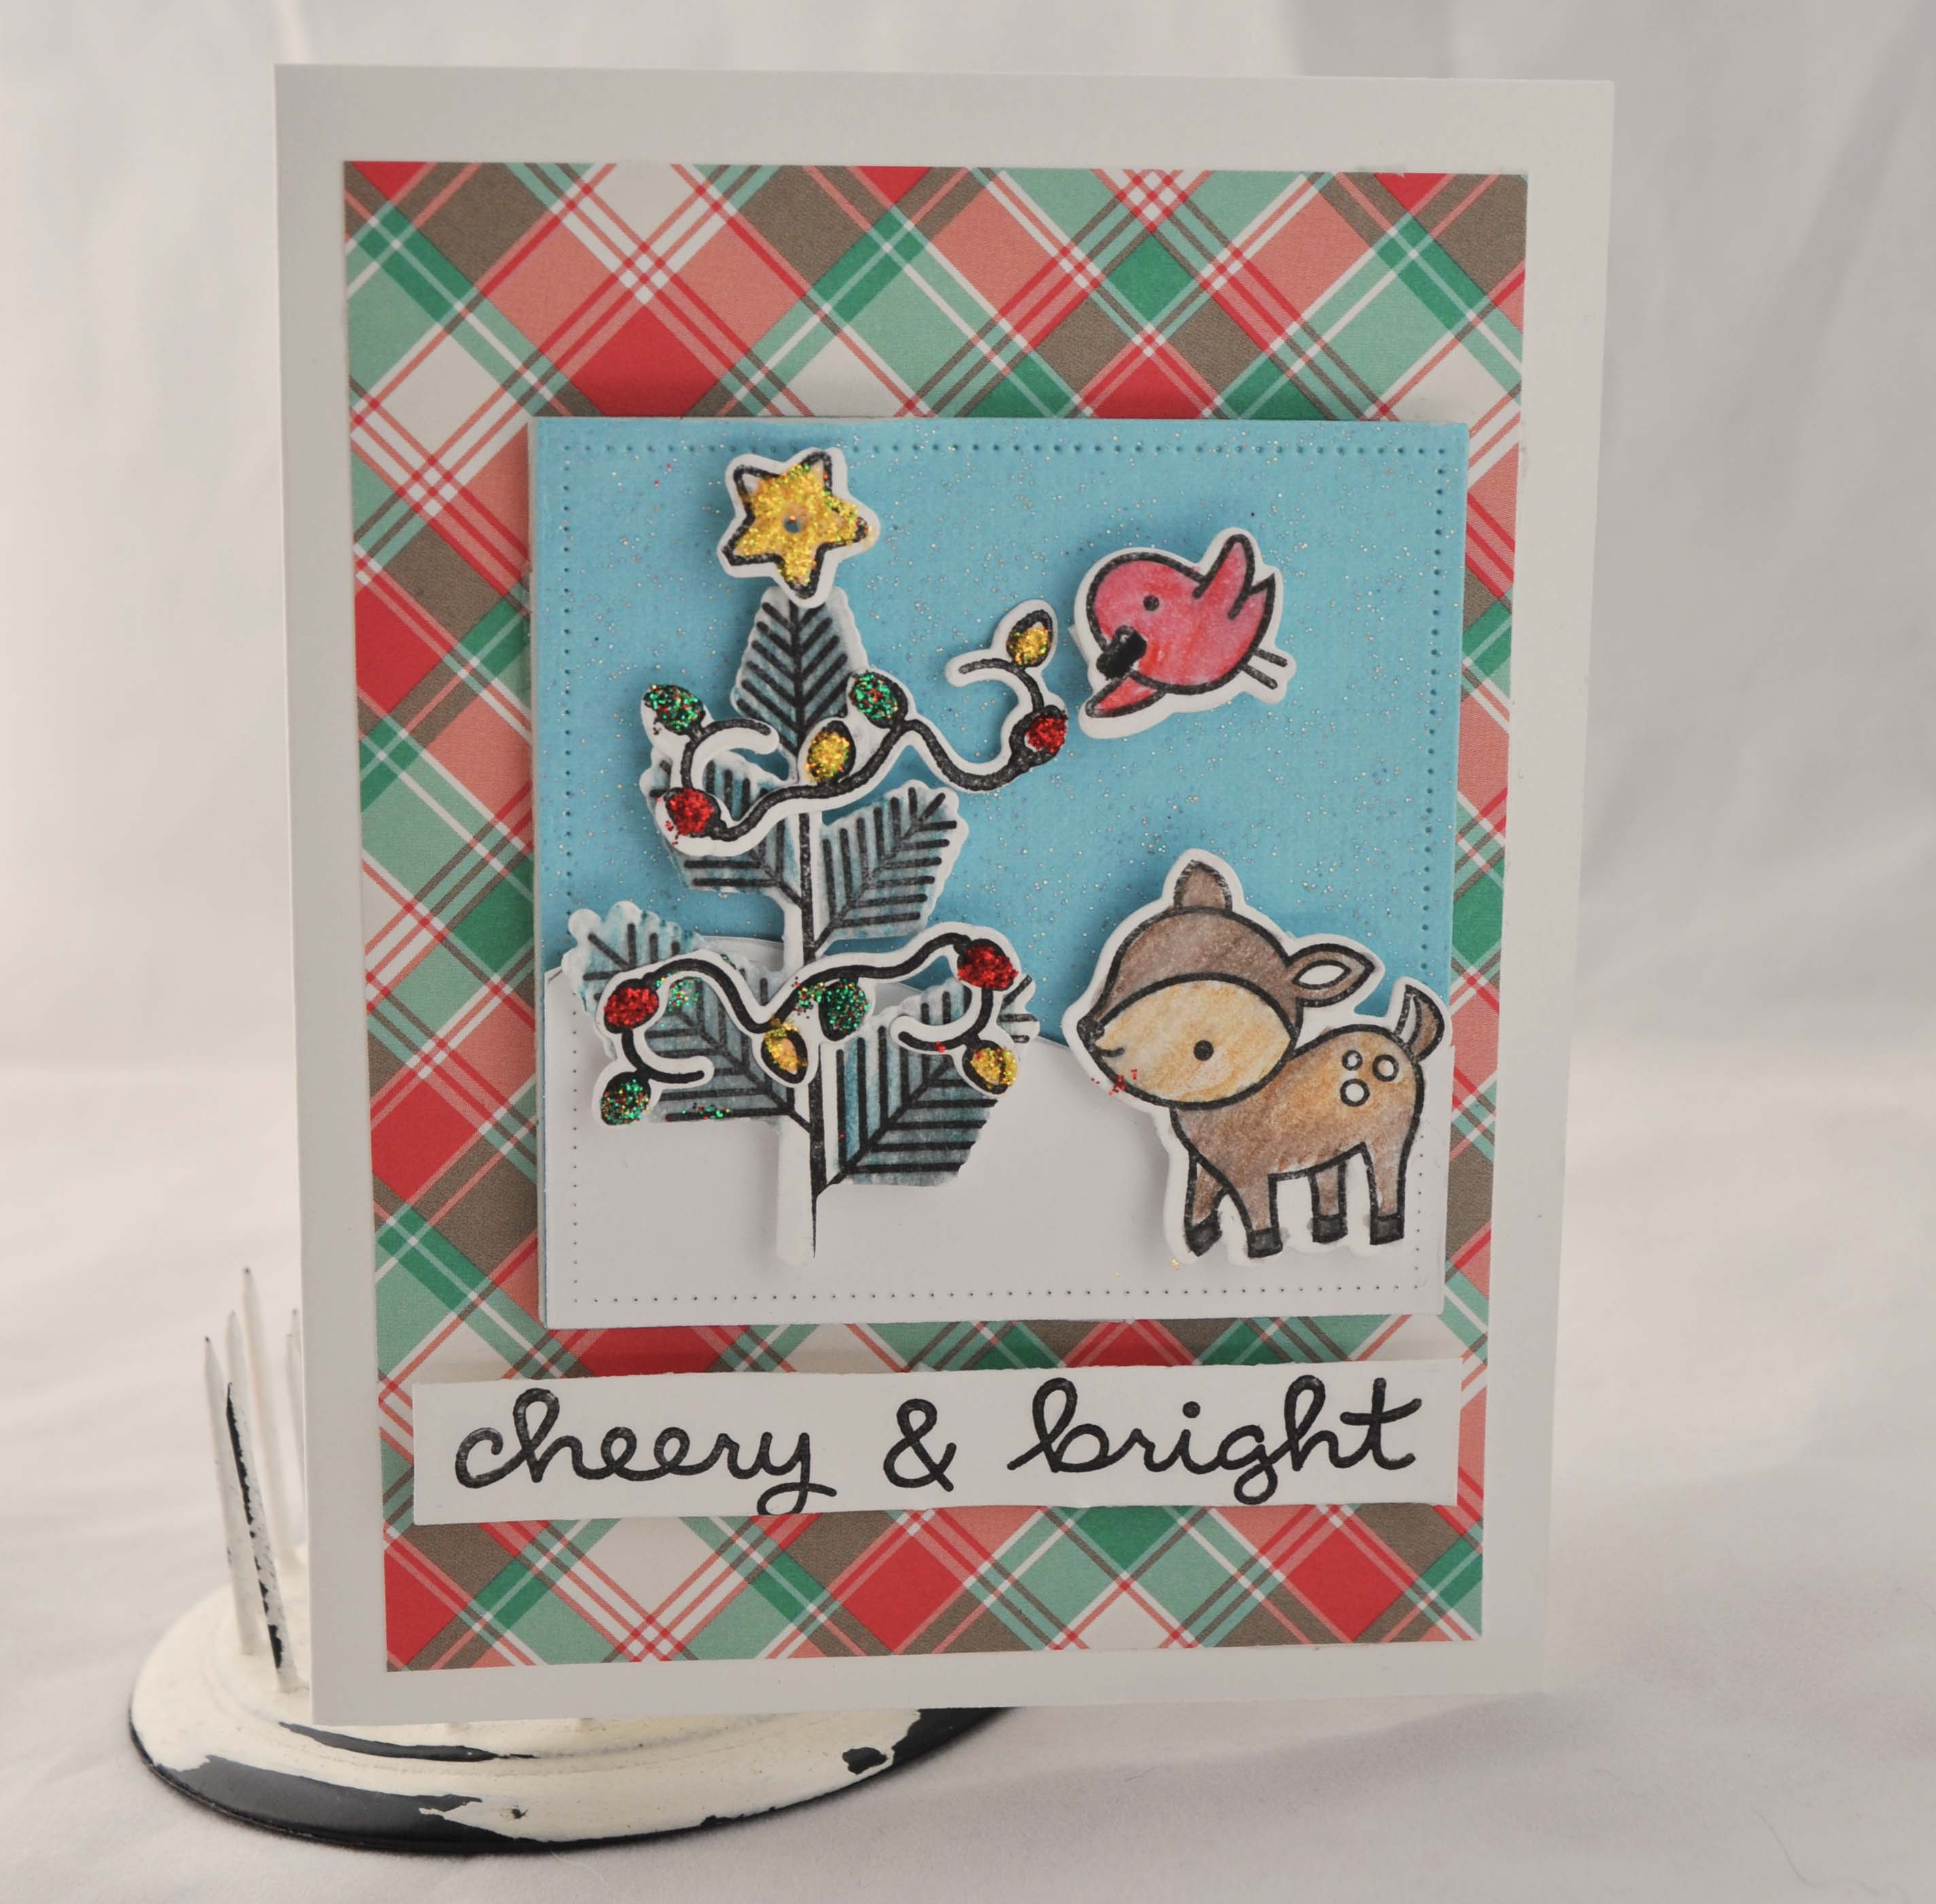 Light Up Holiday Card Lawn Fawn Chibitronics